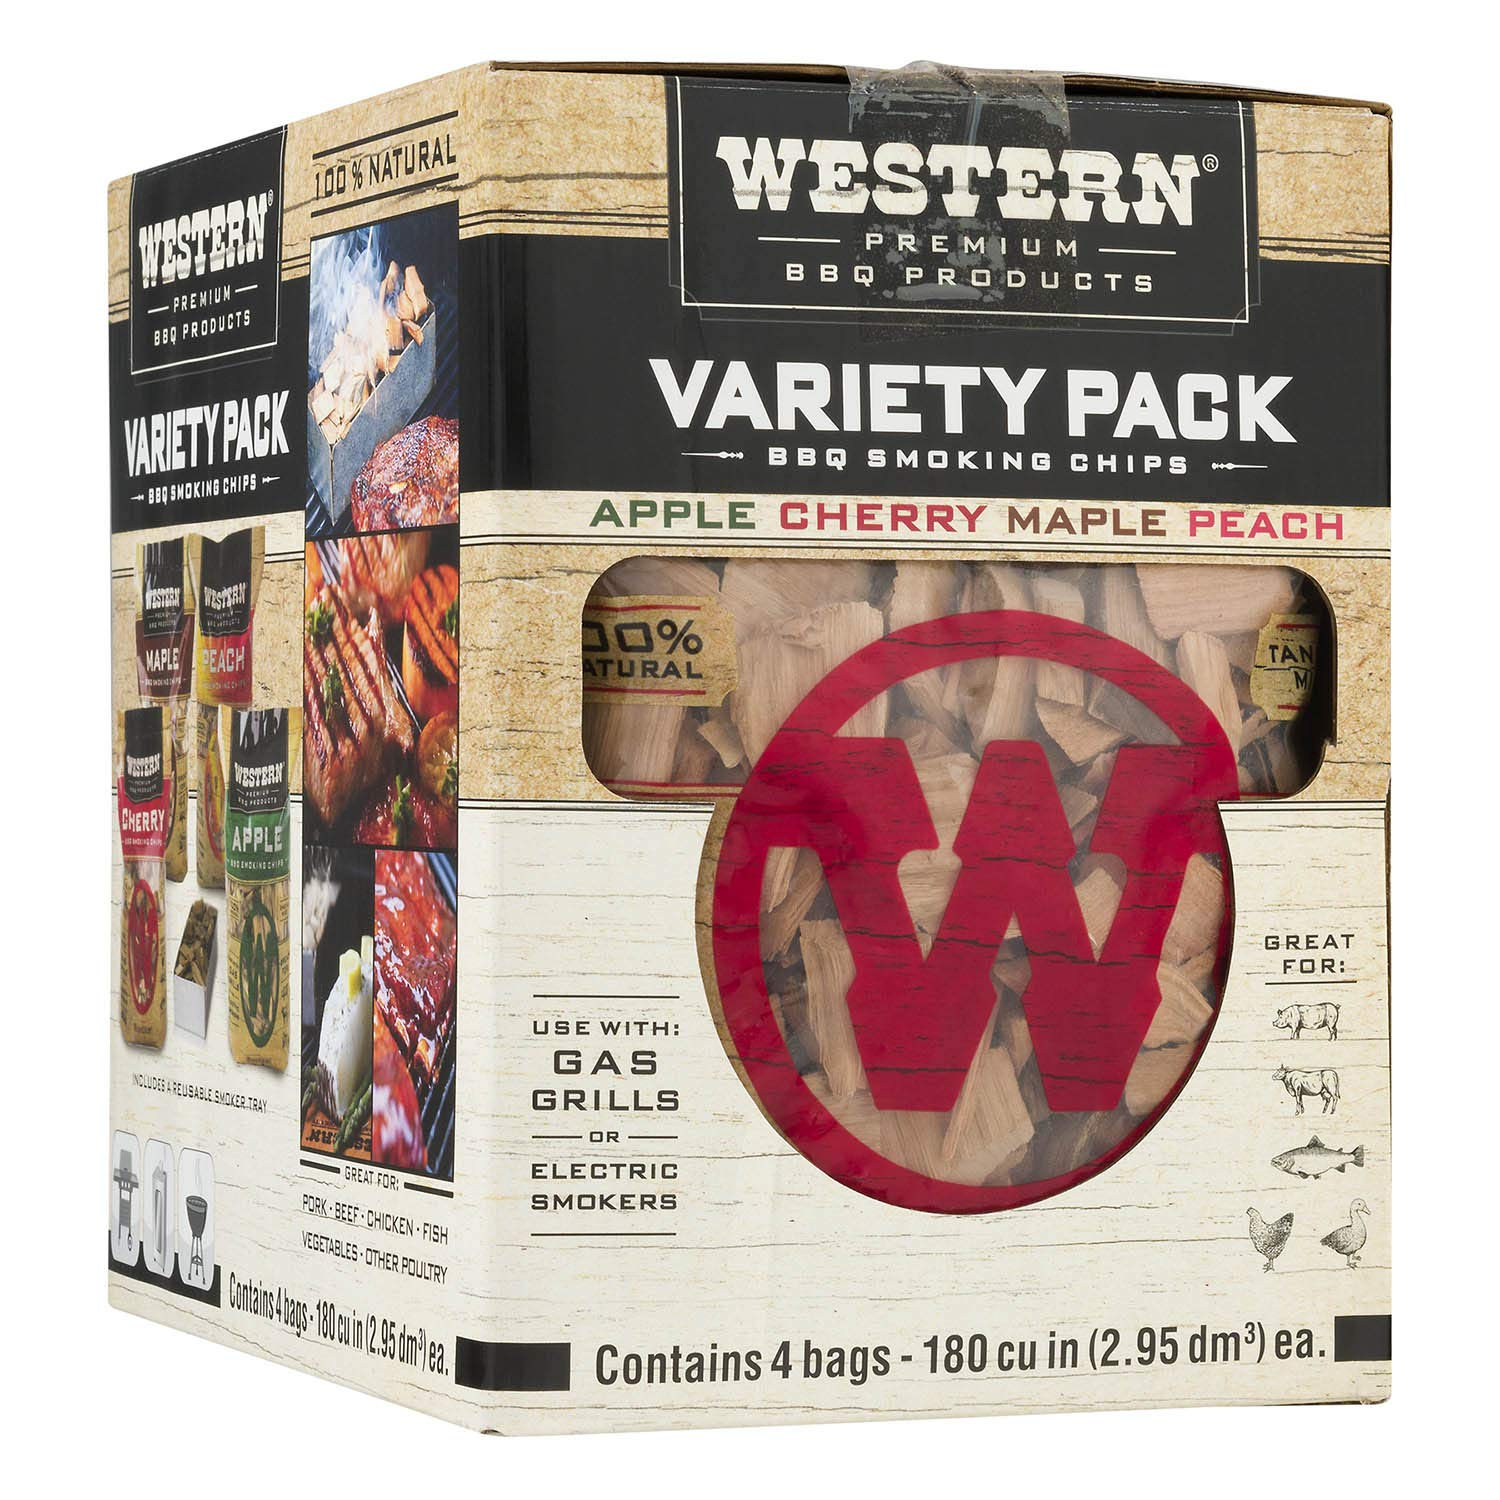 Western Premium BBQ Products BBQ Smoking Chips Variety Pack, 4 Pack by WESTERN